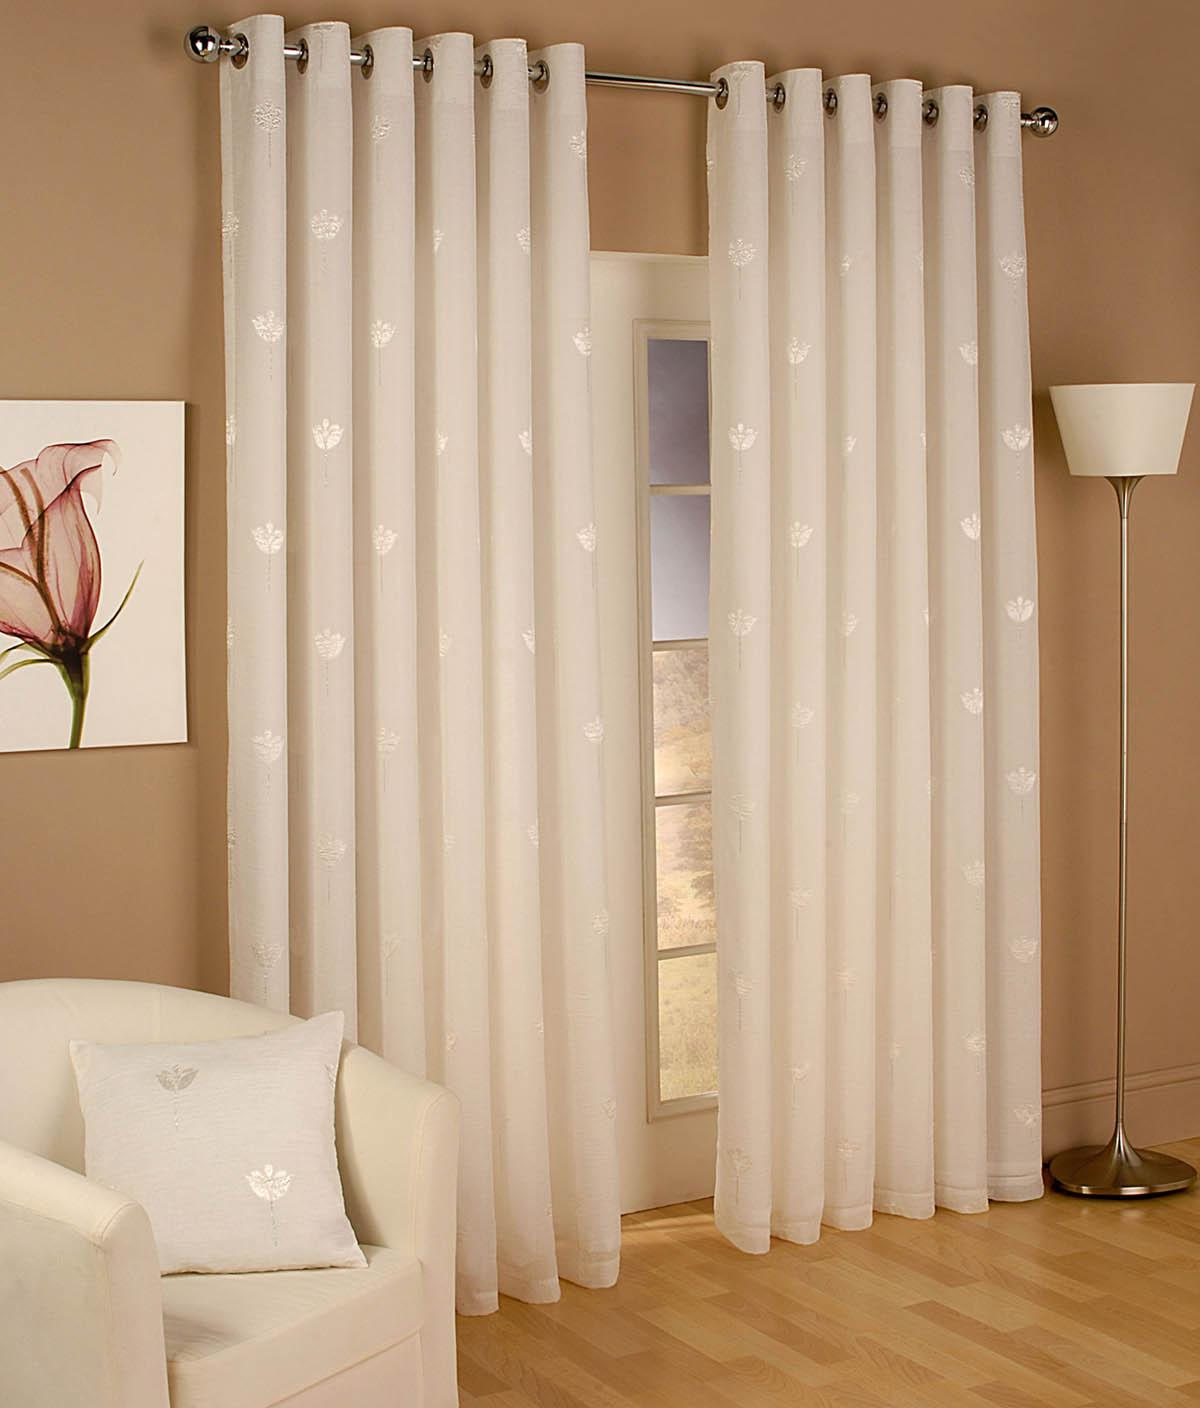 Tyrone Ready Made Curtains Miami Eyelet Voile Curtains Natural Picture